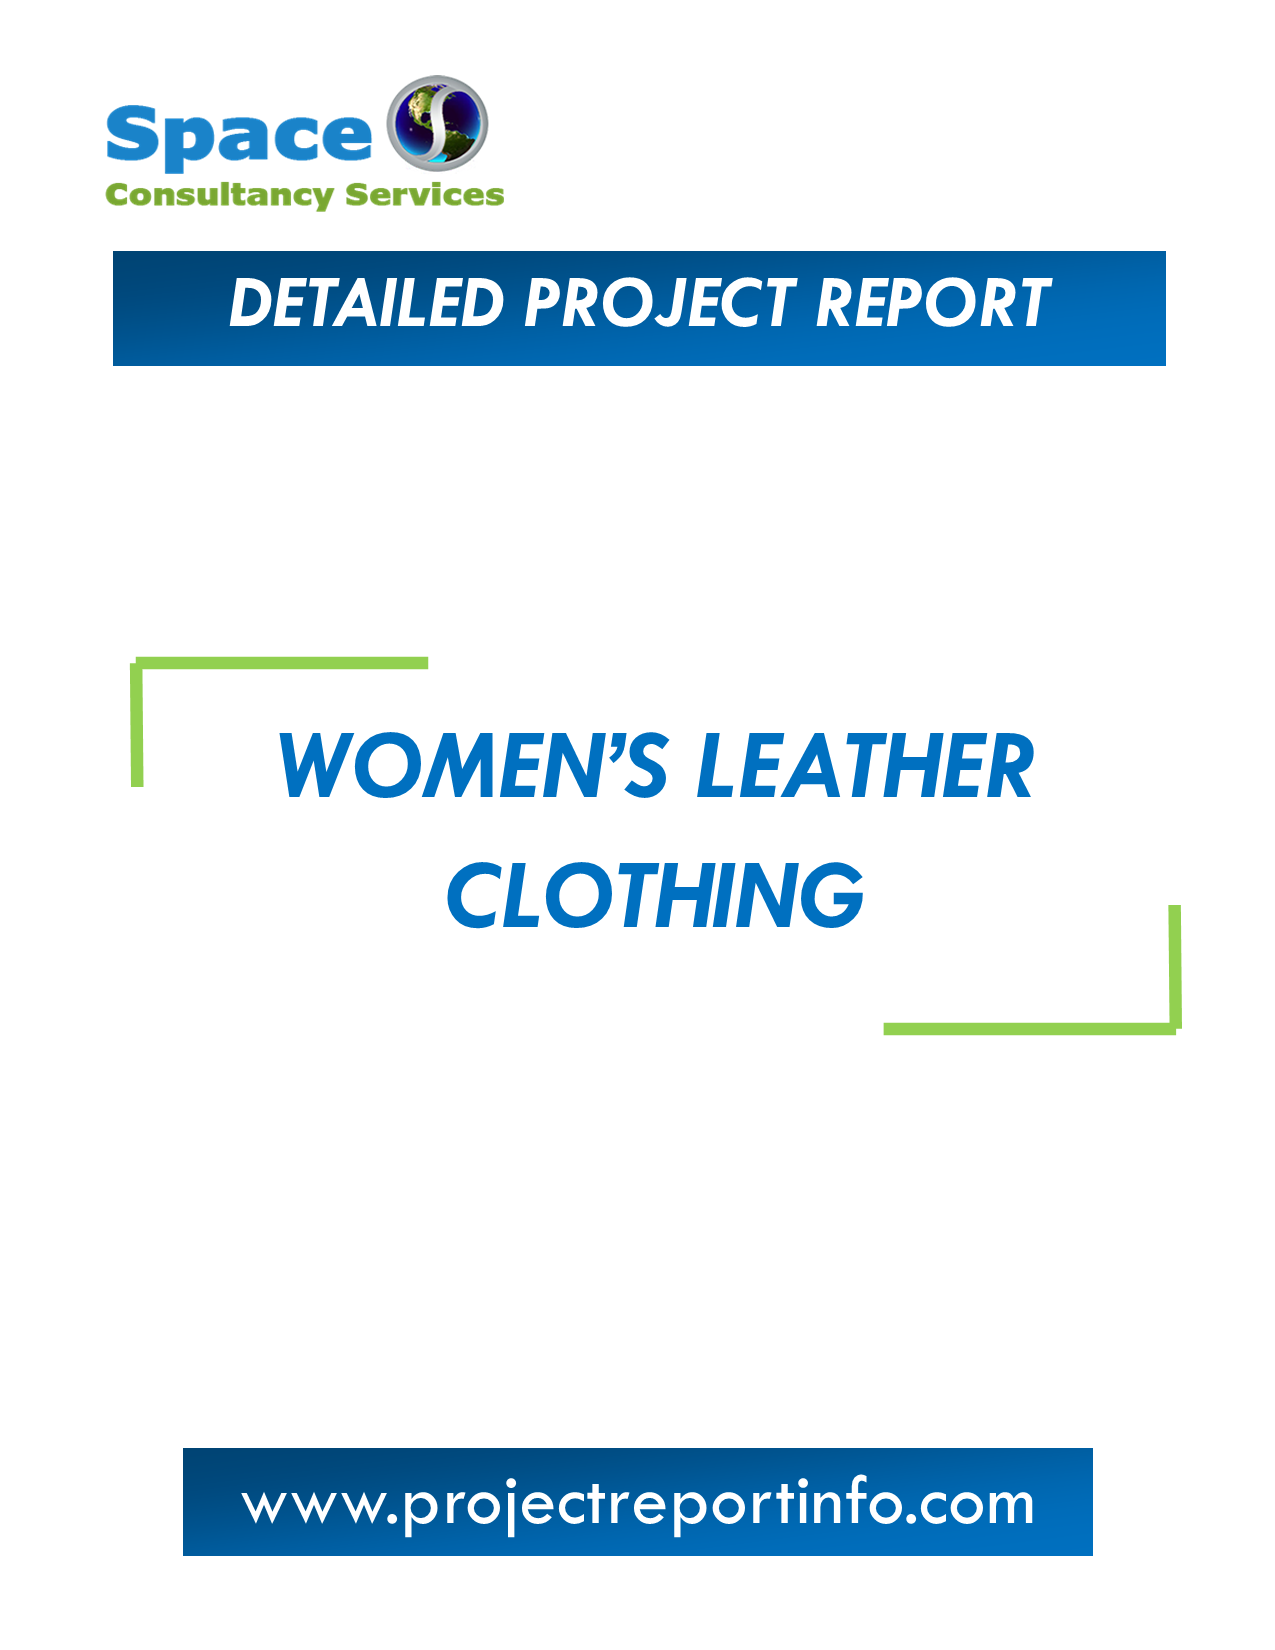 Project Report on Women's Leather Clothing Manufacturing